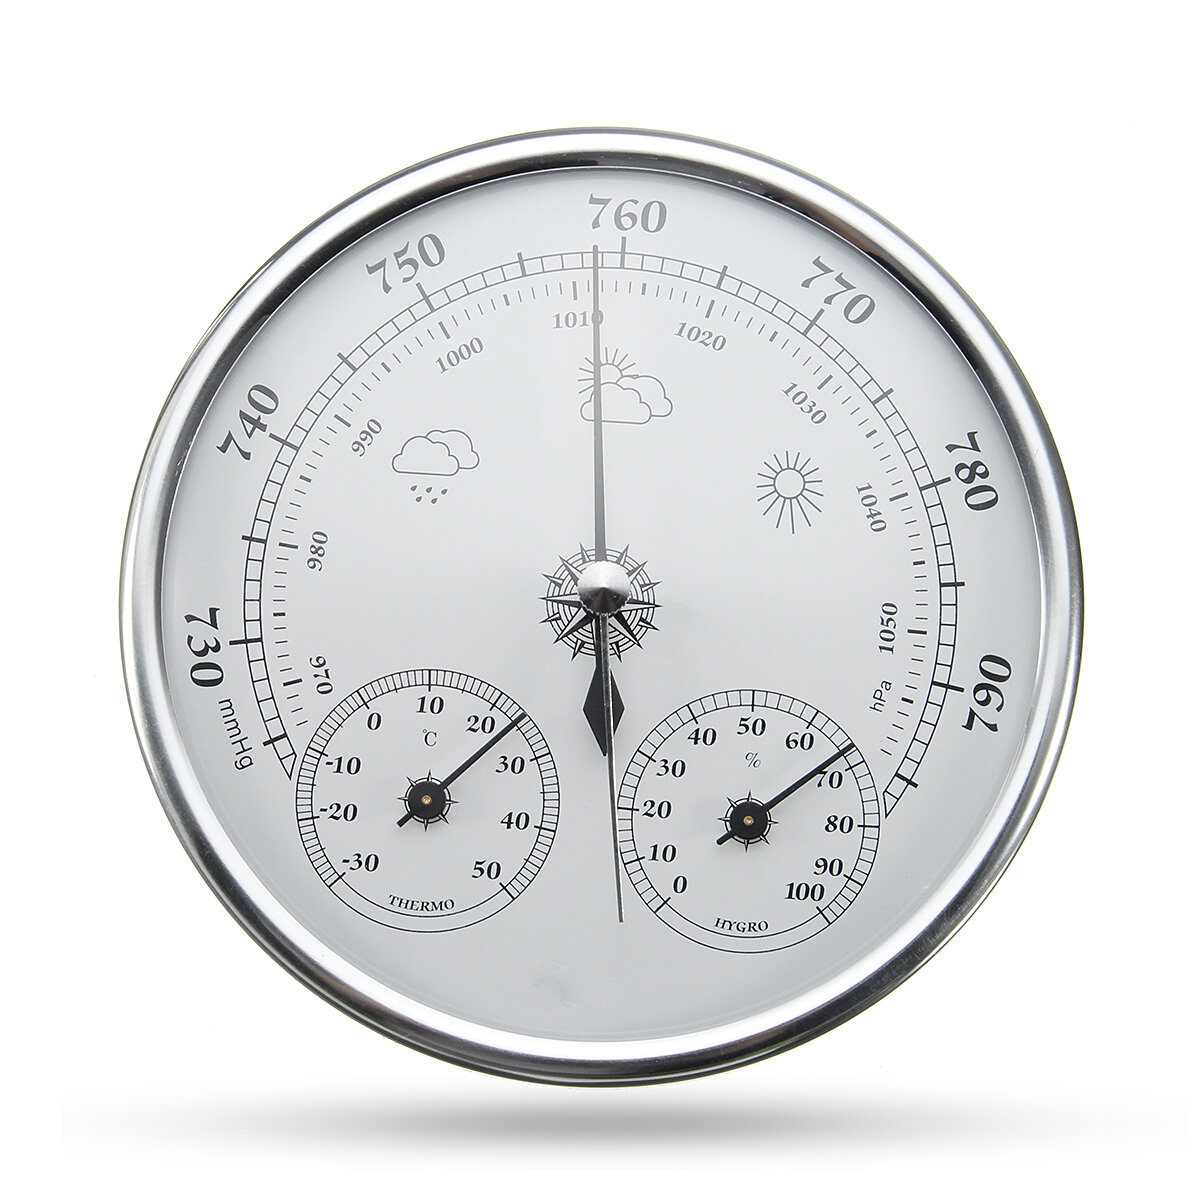 Wall Hanging Weather Forecast Thermometer Hygrometer Air Pressure Meter-30~+50℃ 0~100%Rh 960~1060hPa